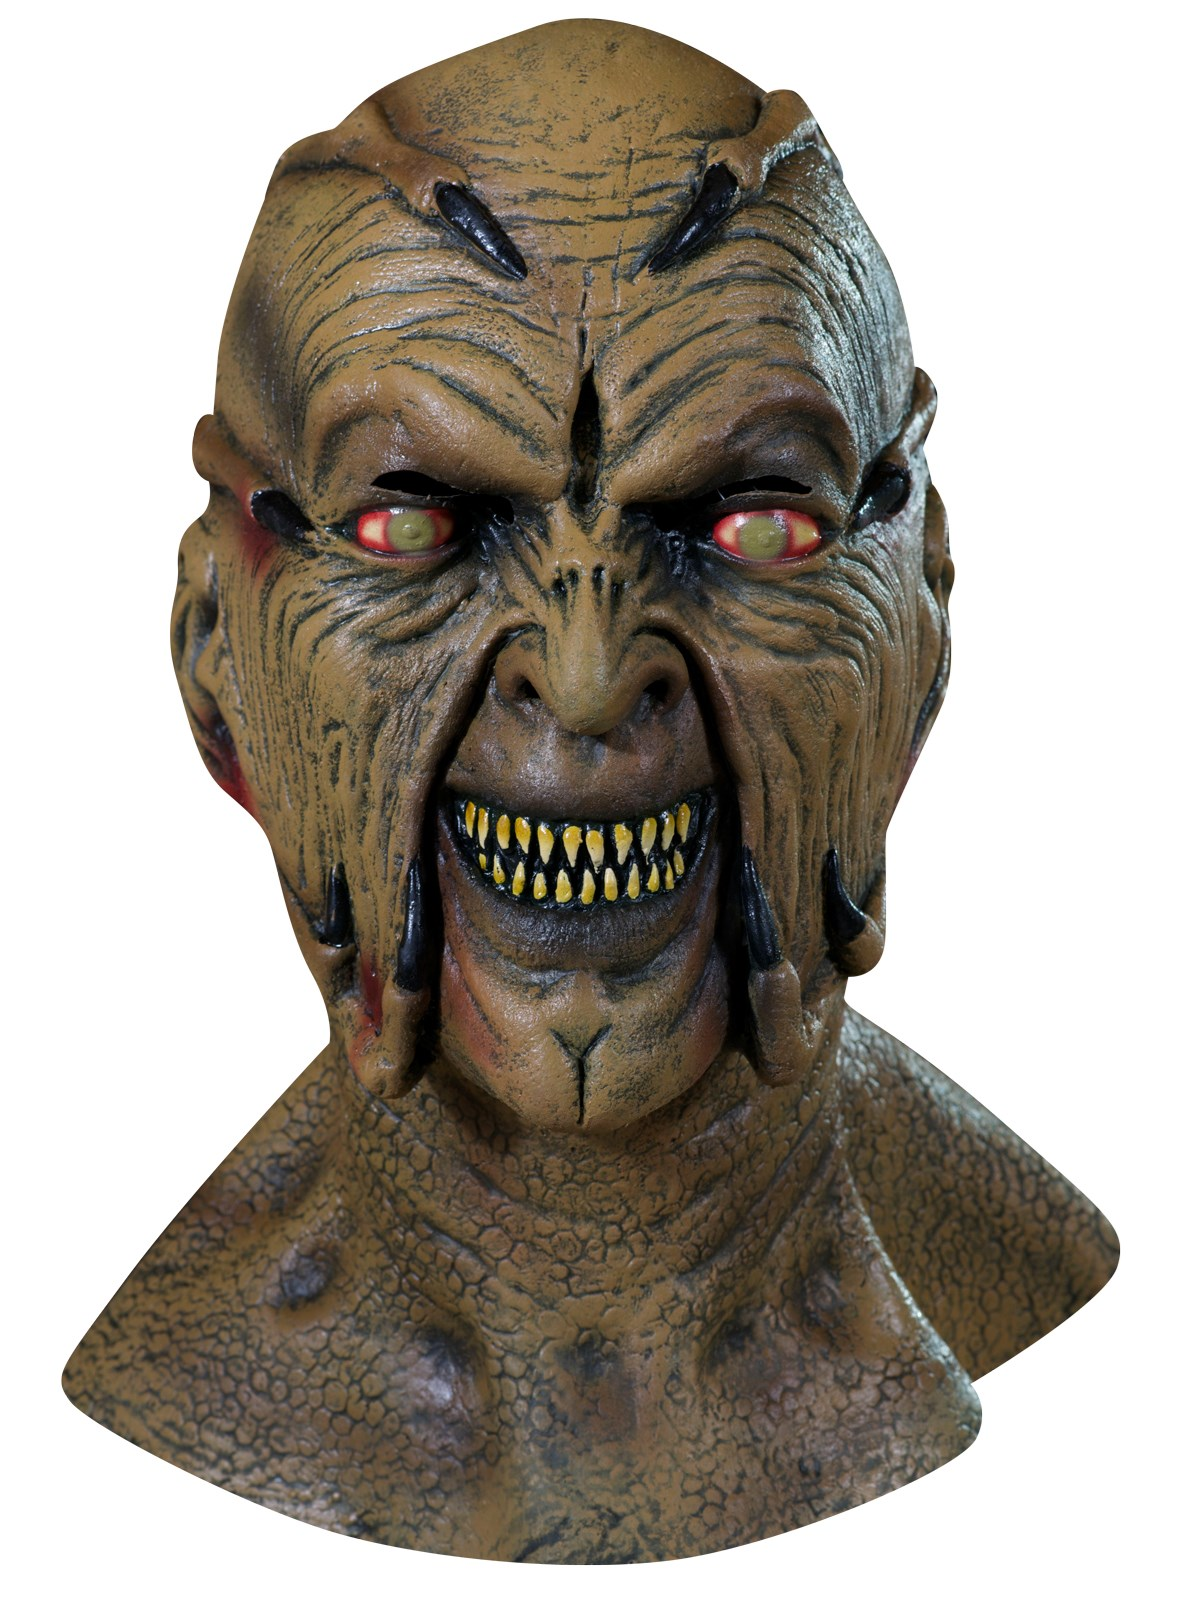 Image of Jeepers Creepers - Creeper Horror Mask